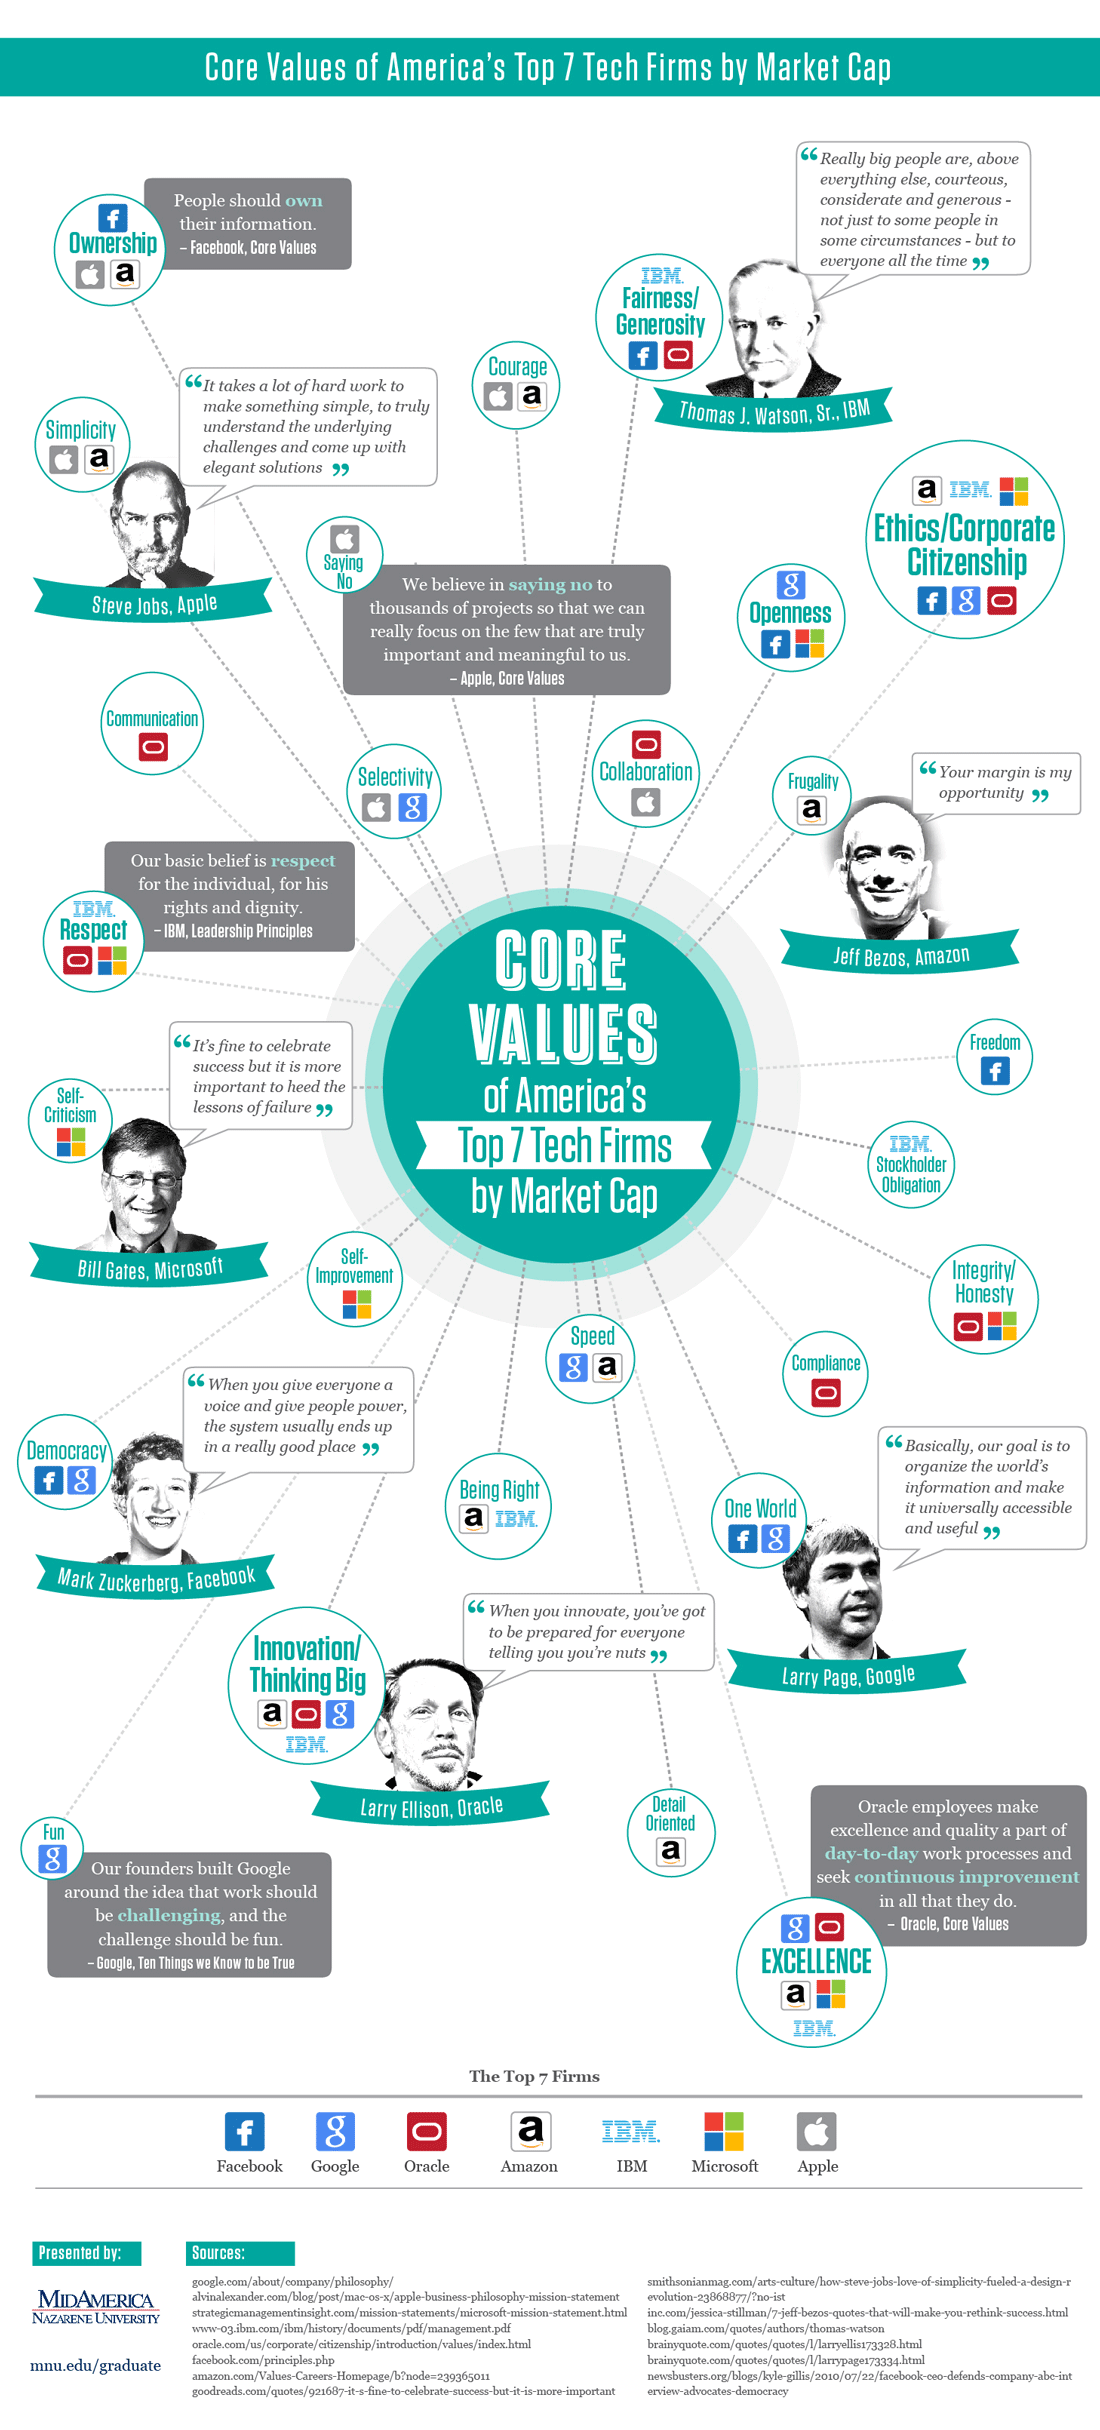 The Core Values of America's Top 7 Tech Firms #infographic